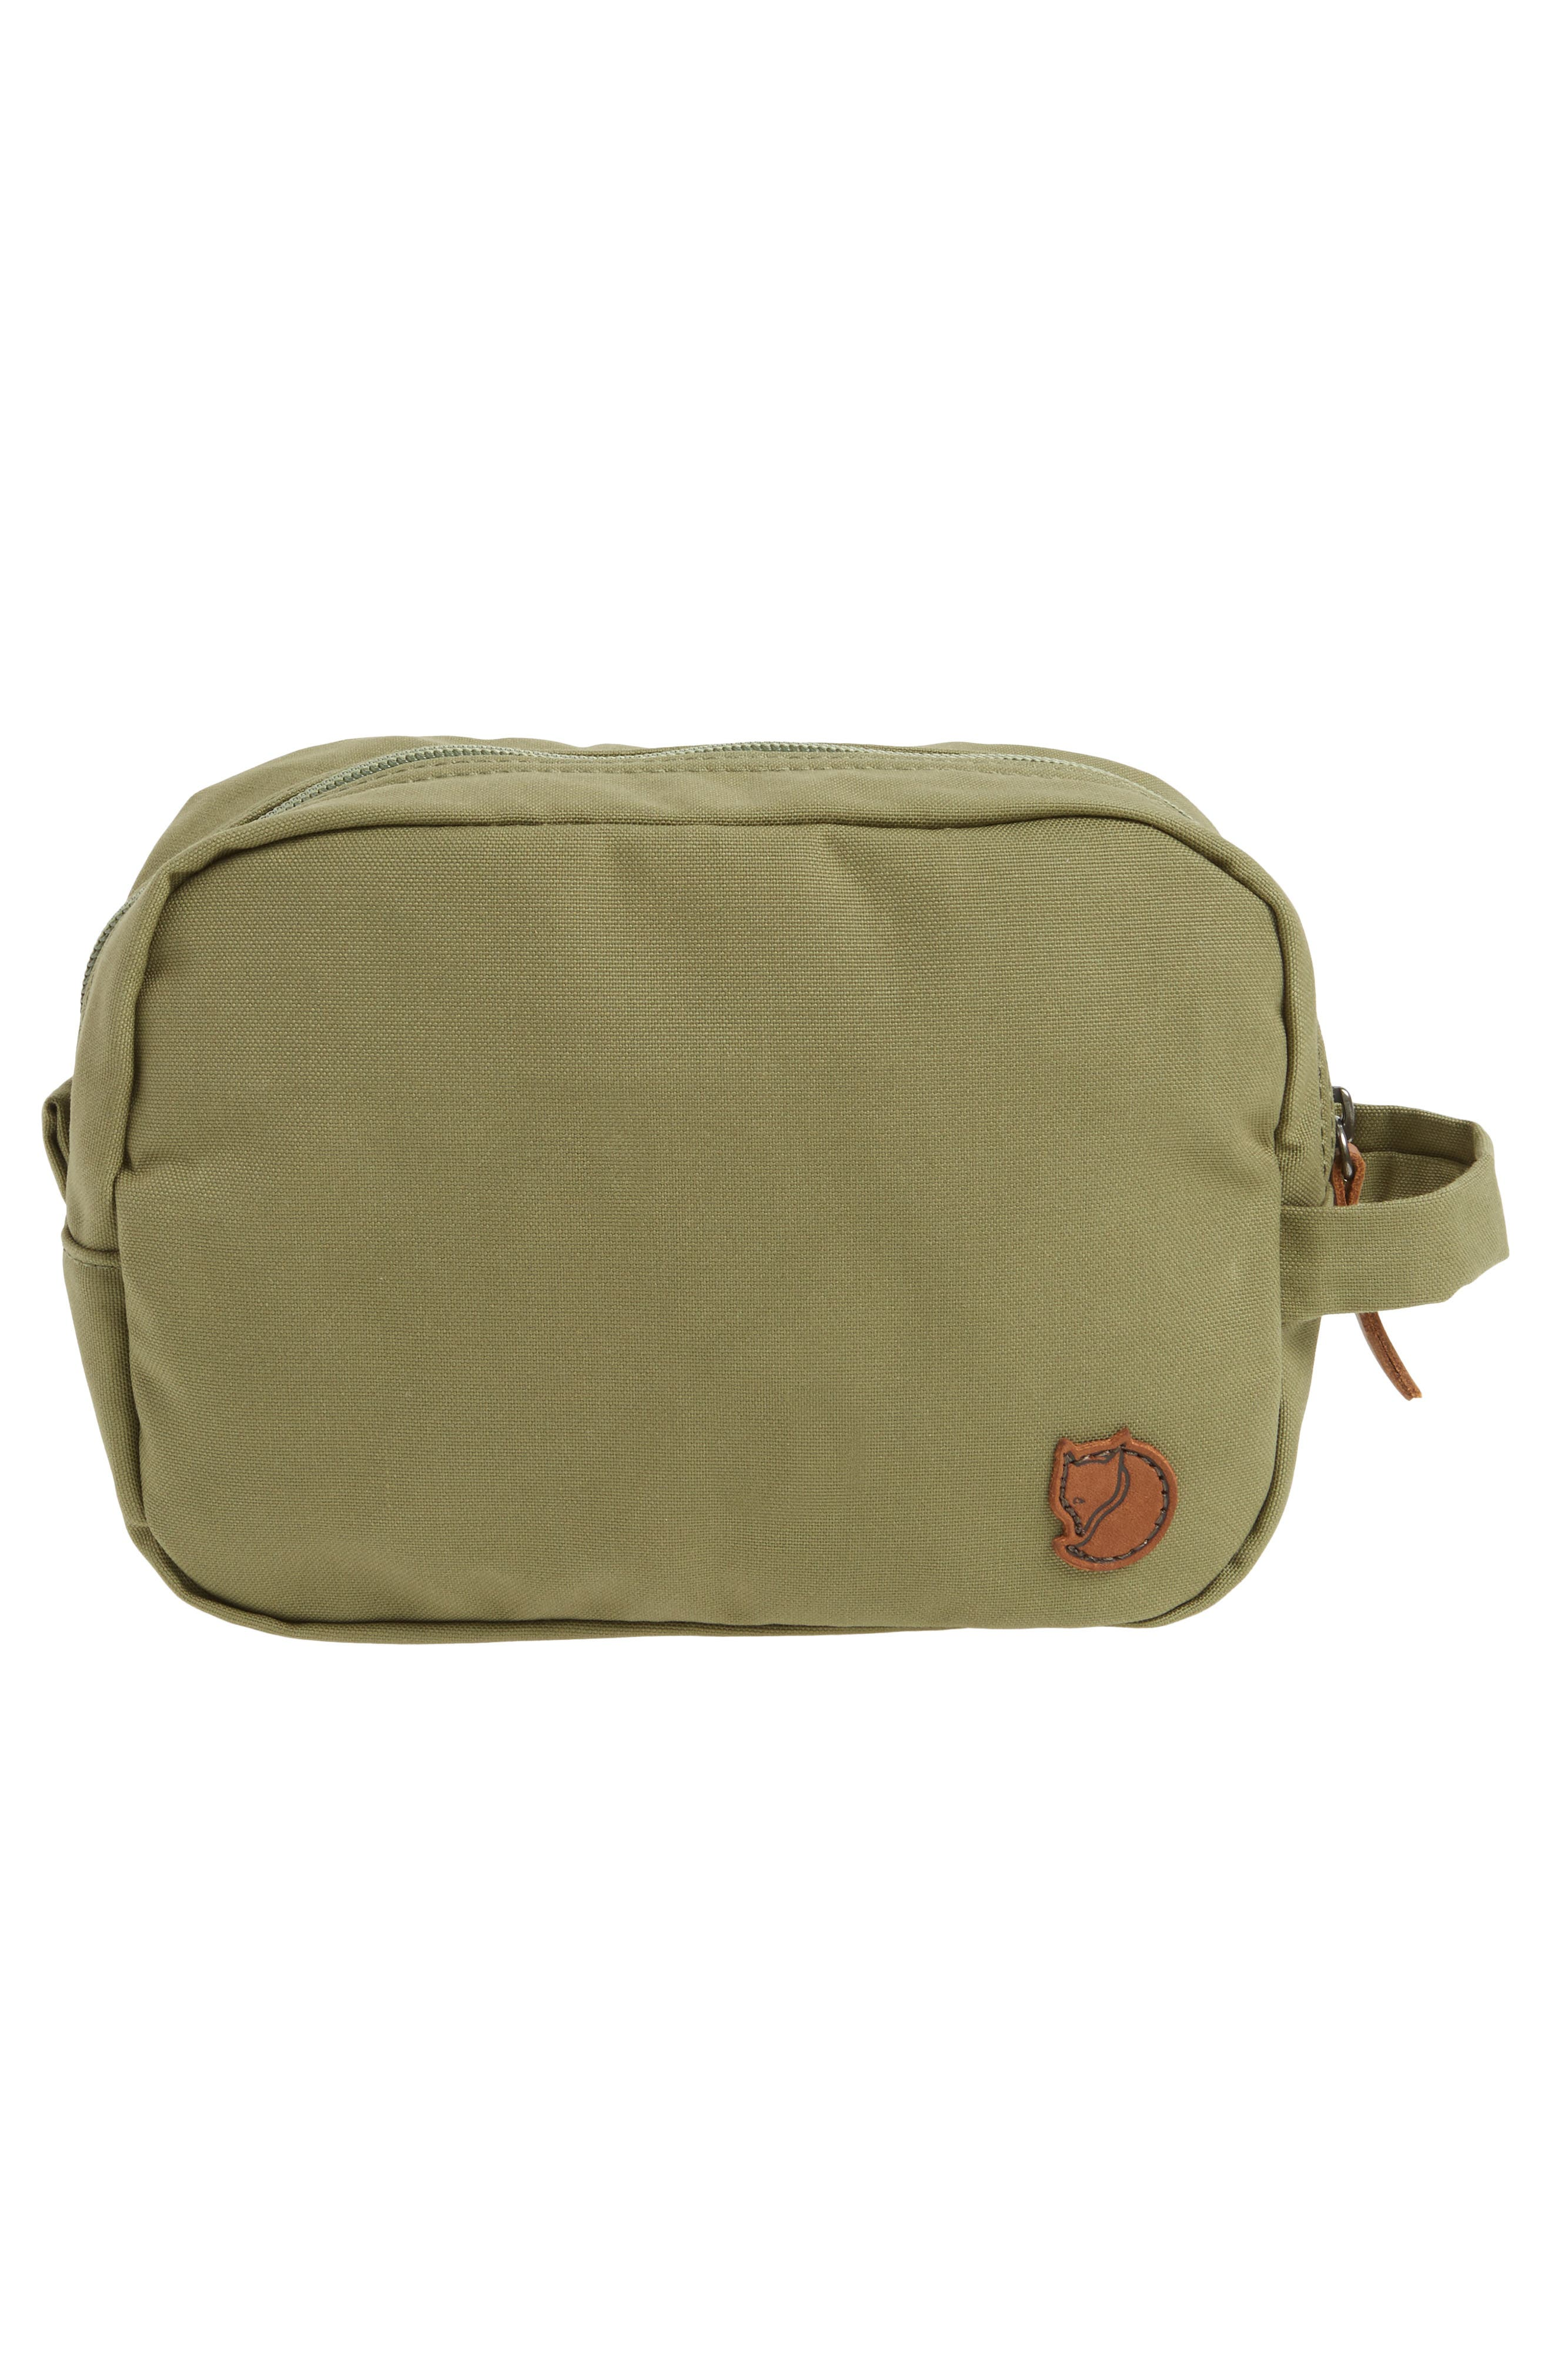 Water Resistant Gear Bag Pouch,                             Main thumbnail 1, color,                             Green